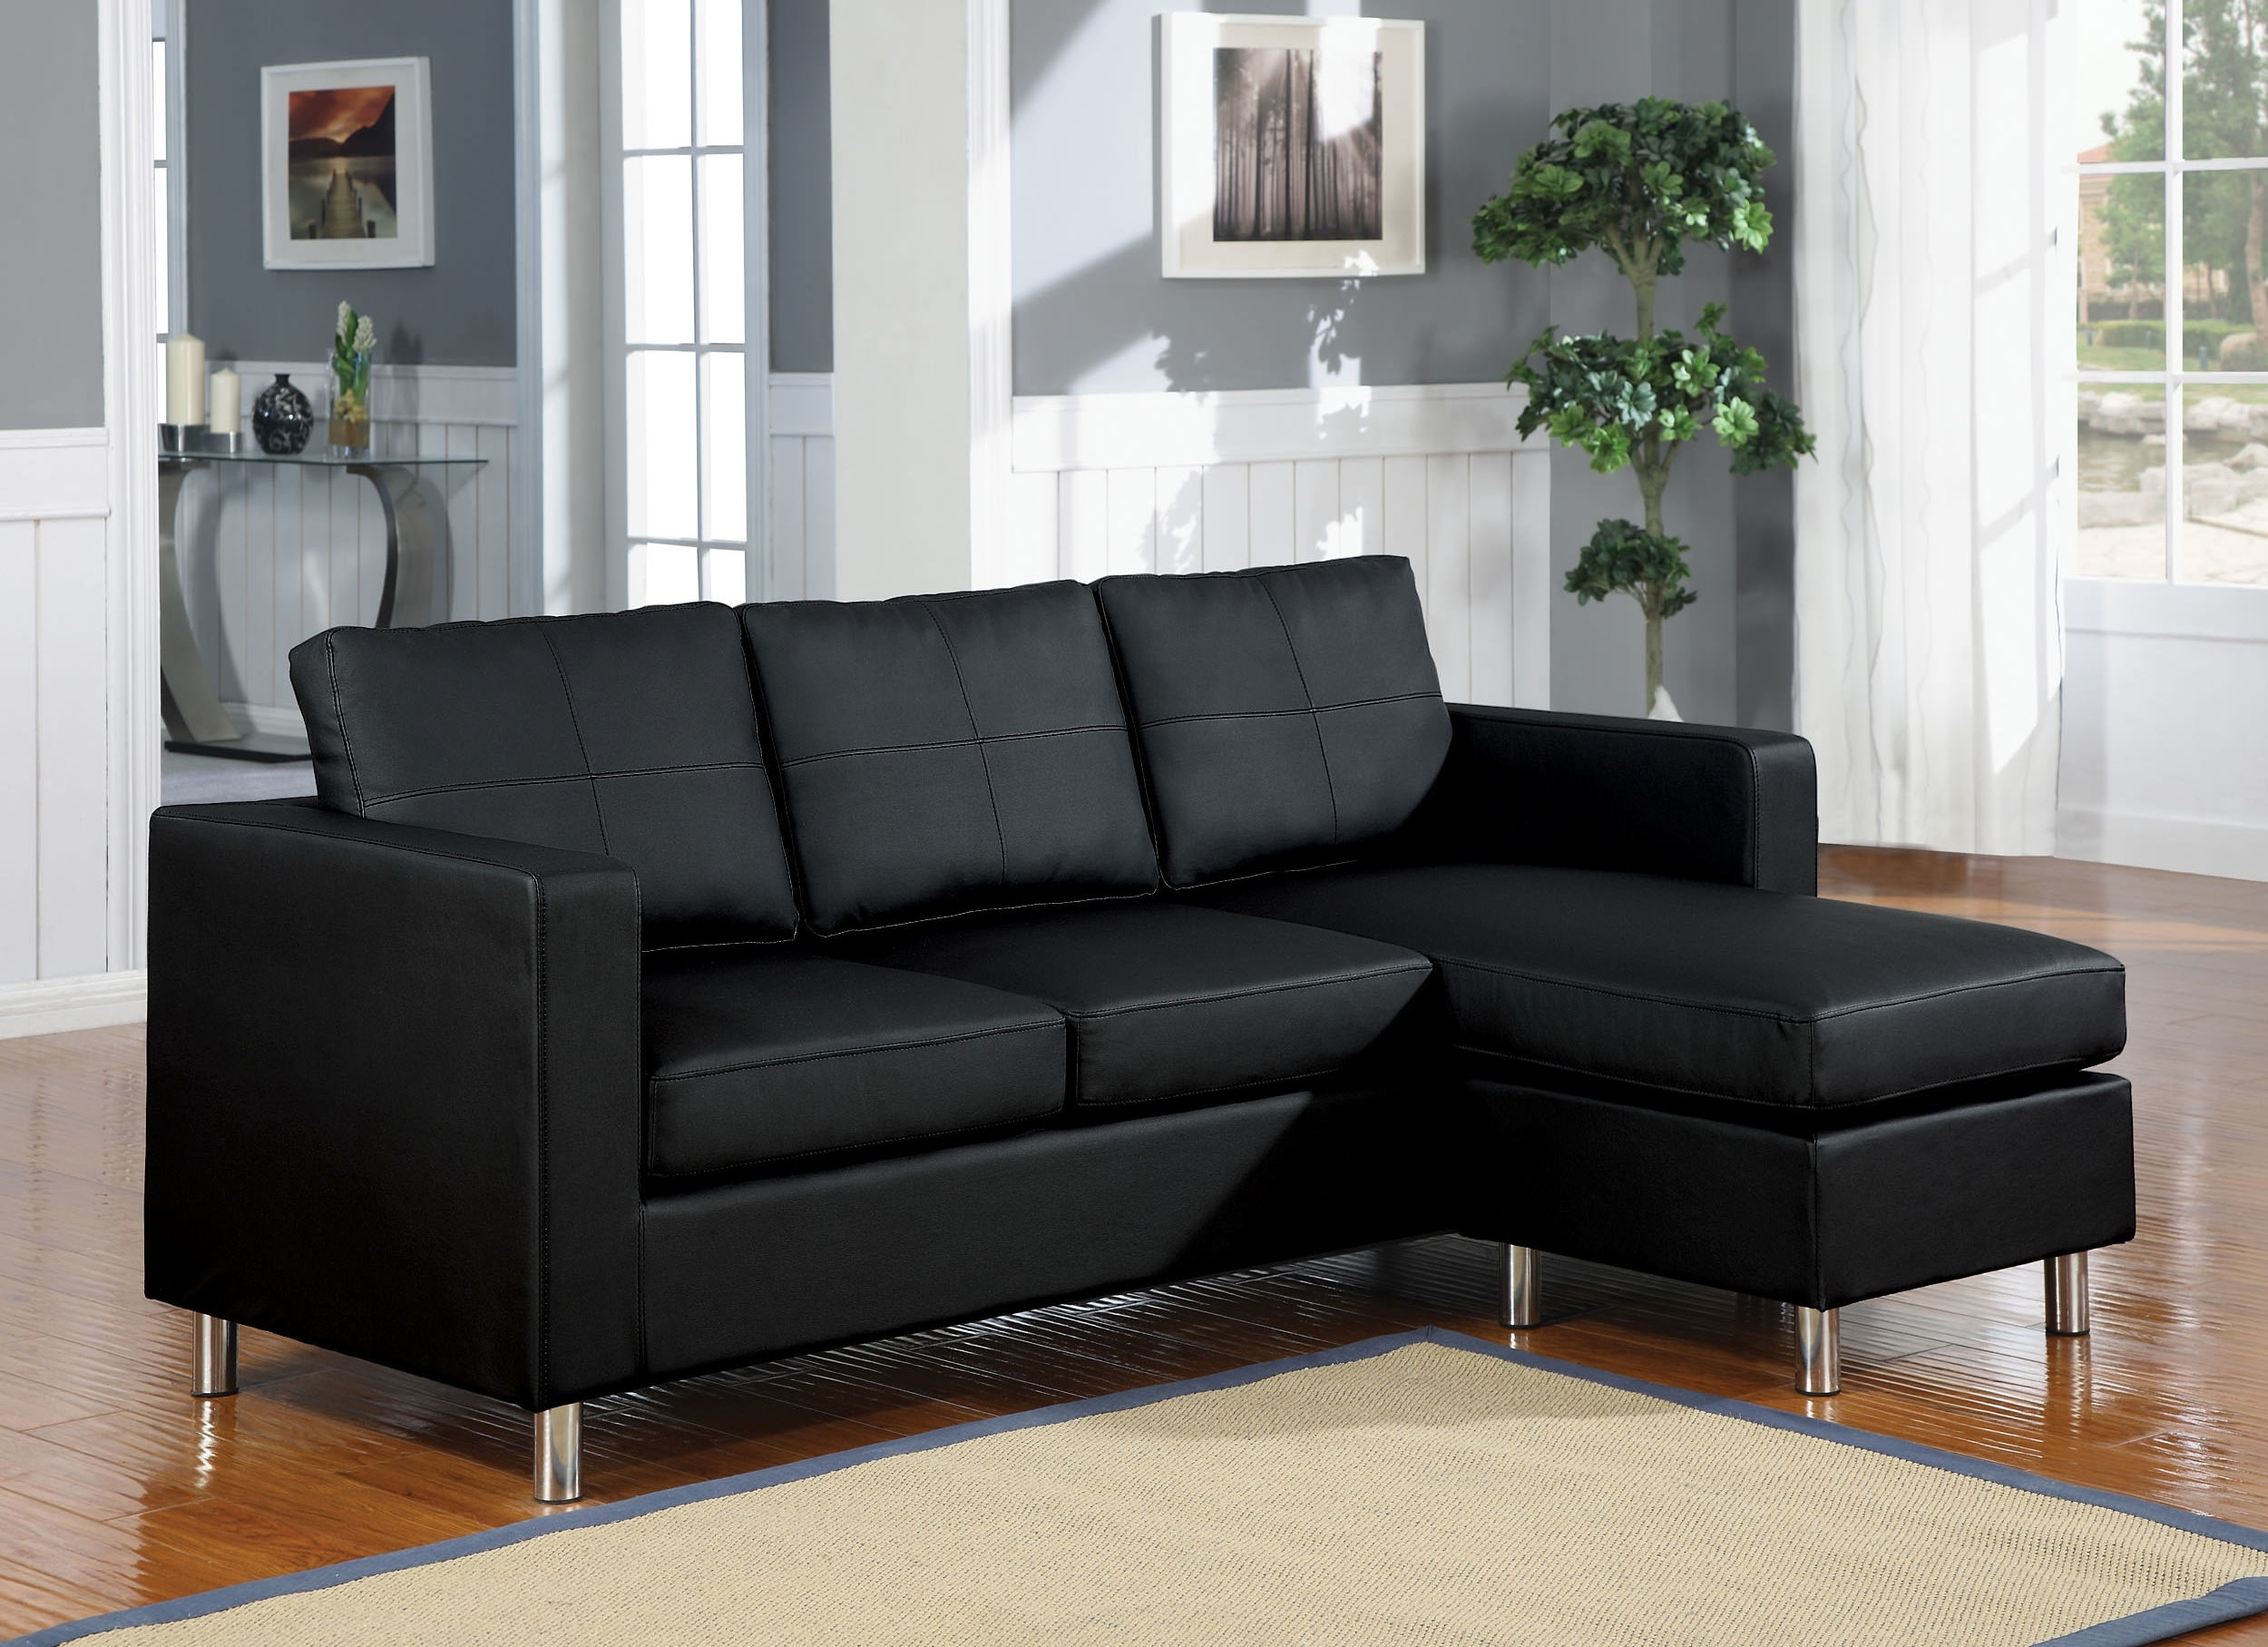 Modular Sectional Sofas Designs Ideas Plans Model Design Kemen Sofa with regard to Black Leather Sectionals With Ottoman (Image 10 of 15)